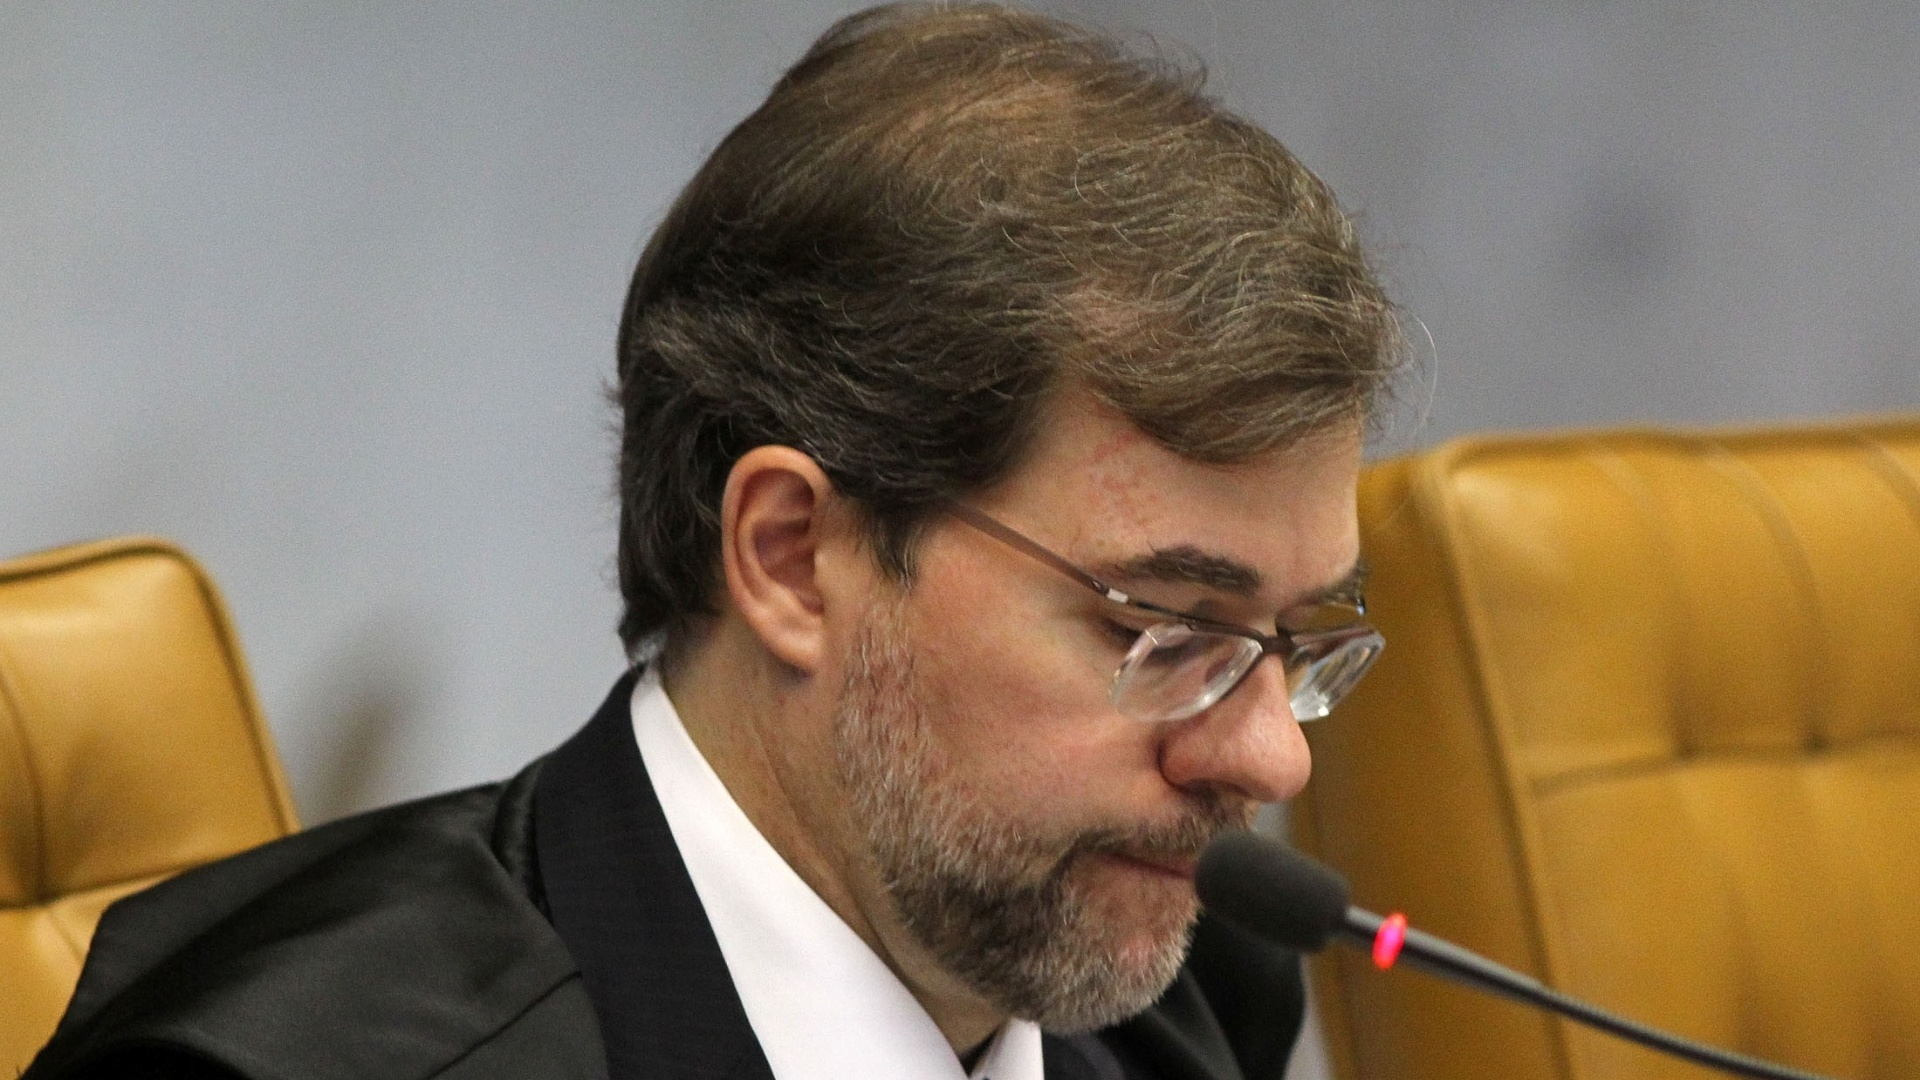 12.nov.2012 - O ministro do STF Dias Toffoli acompanha sesso do julgamento do mensalo, em Braslia. Durante definio da pena do ex-ministro da Casa Civil Jos Dirceu para o crime de corrupo ativa, Toffoli no votou, j que ele e o ministro Ricardo Lewandowski, revisor do processo, absolveram Dirceu